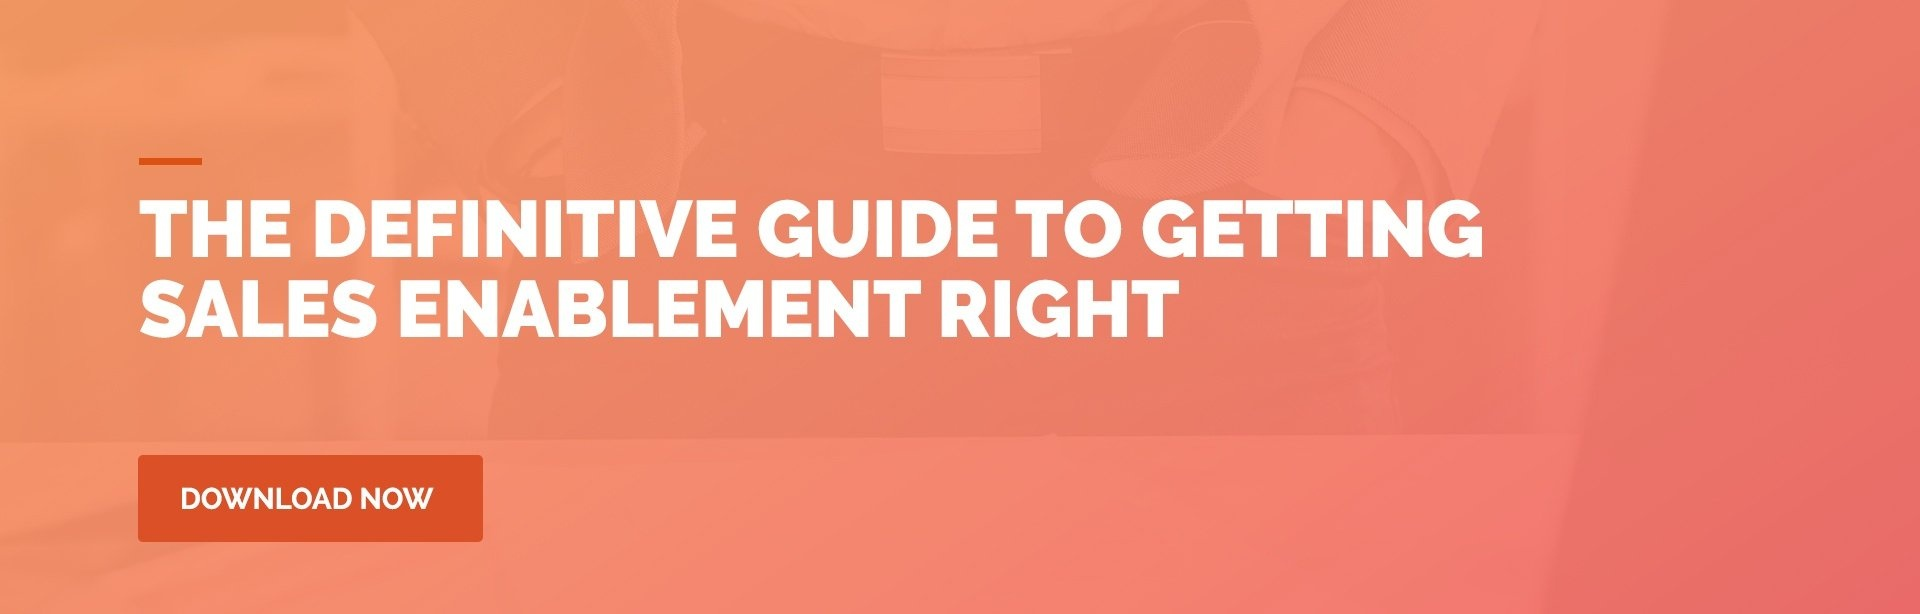 Definitive Guide to Getting Sales Enablement Right